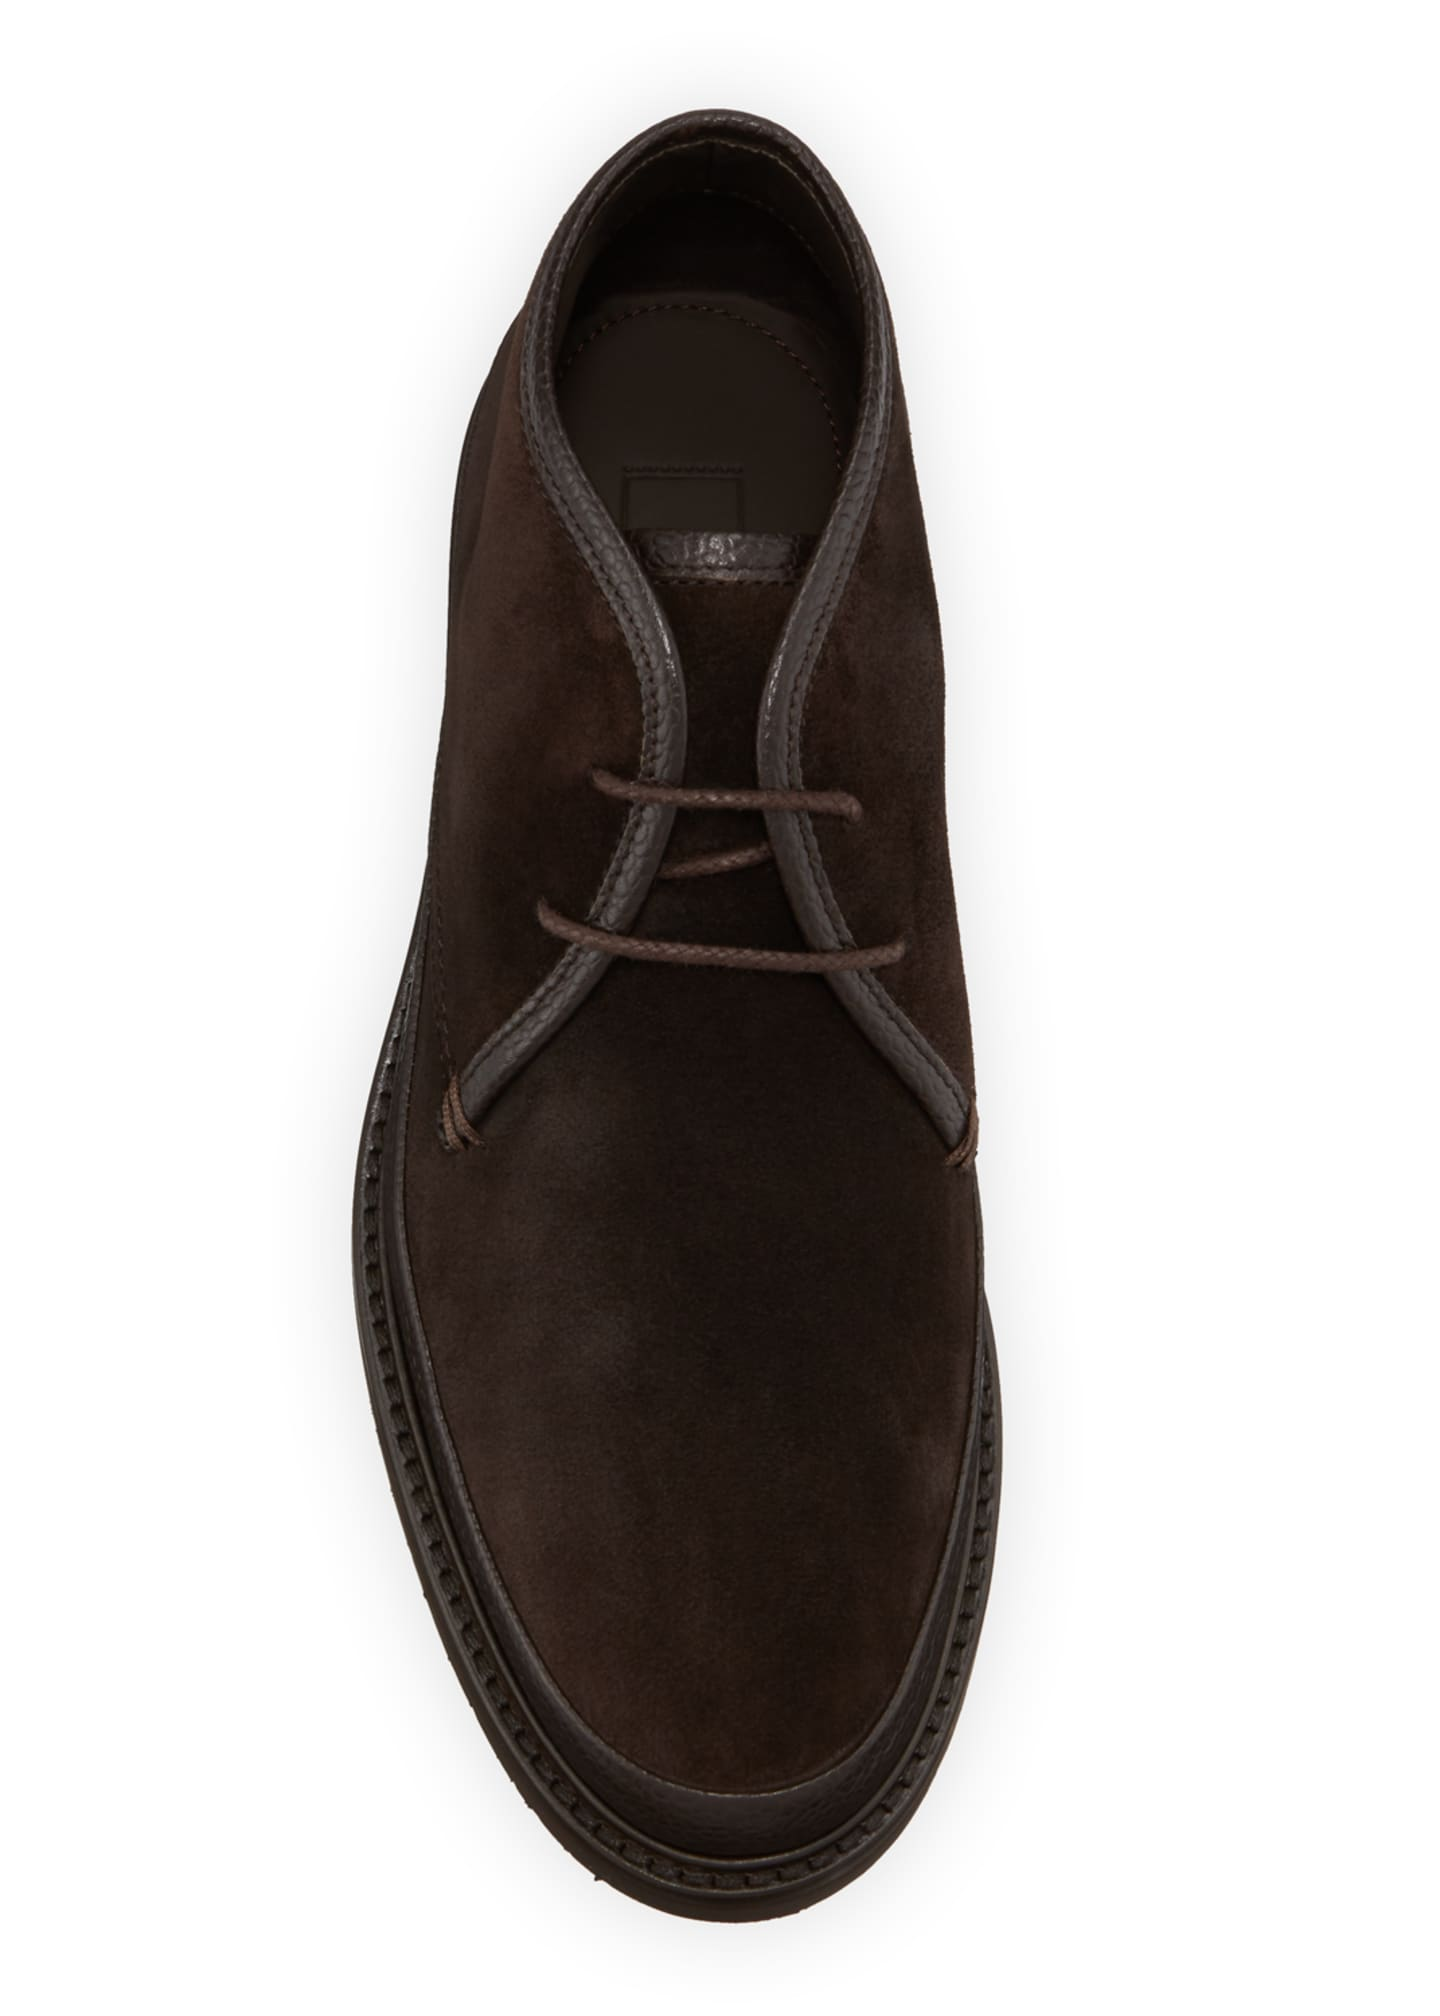 Image 2 of 3: Men's Trivero Suede Chukka Boots with Mud Guard